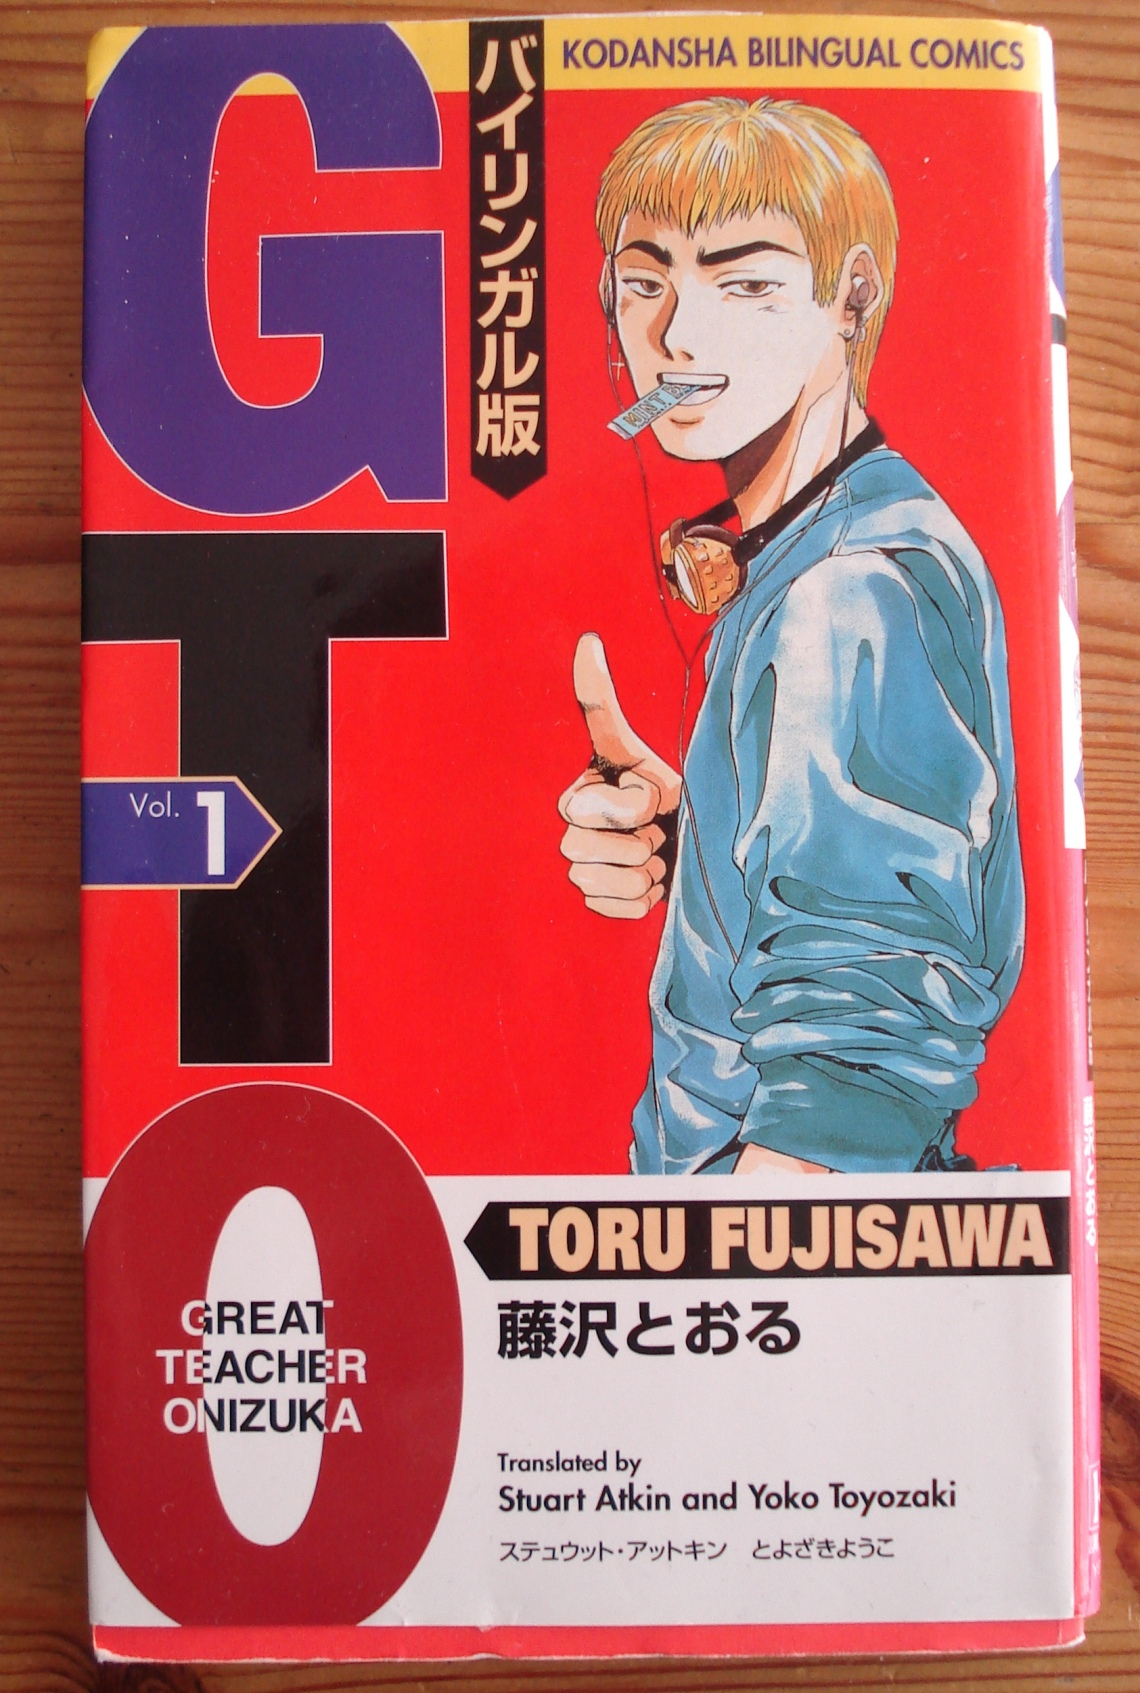 Great Teacher Onizuka Book